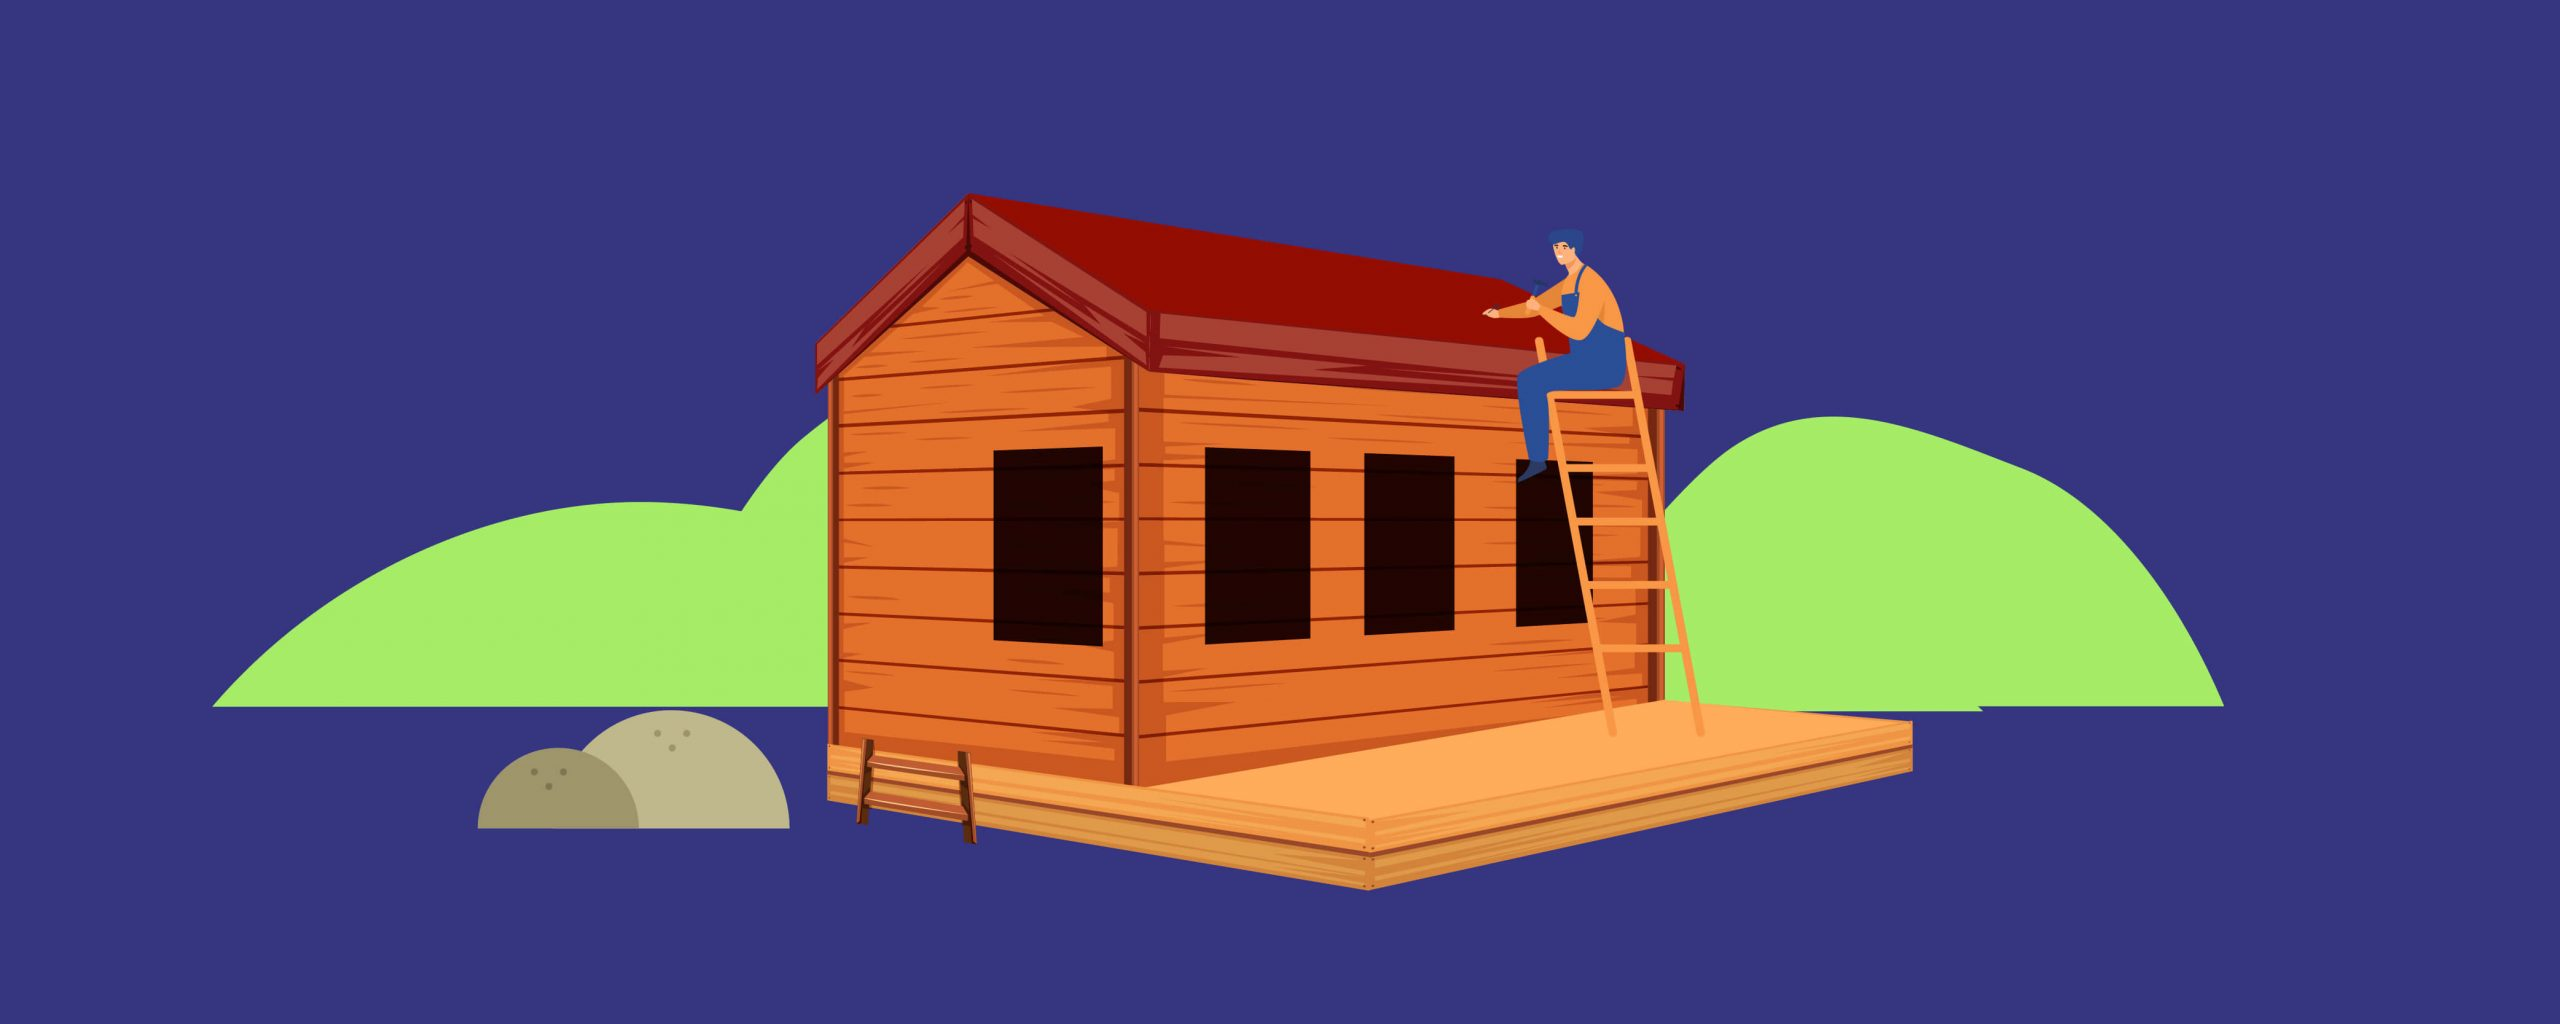 Build the shed roof